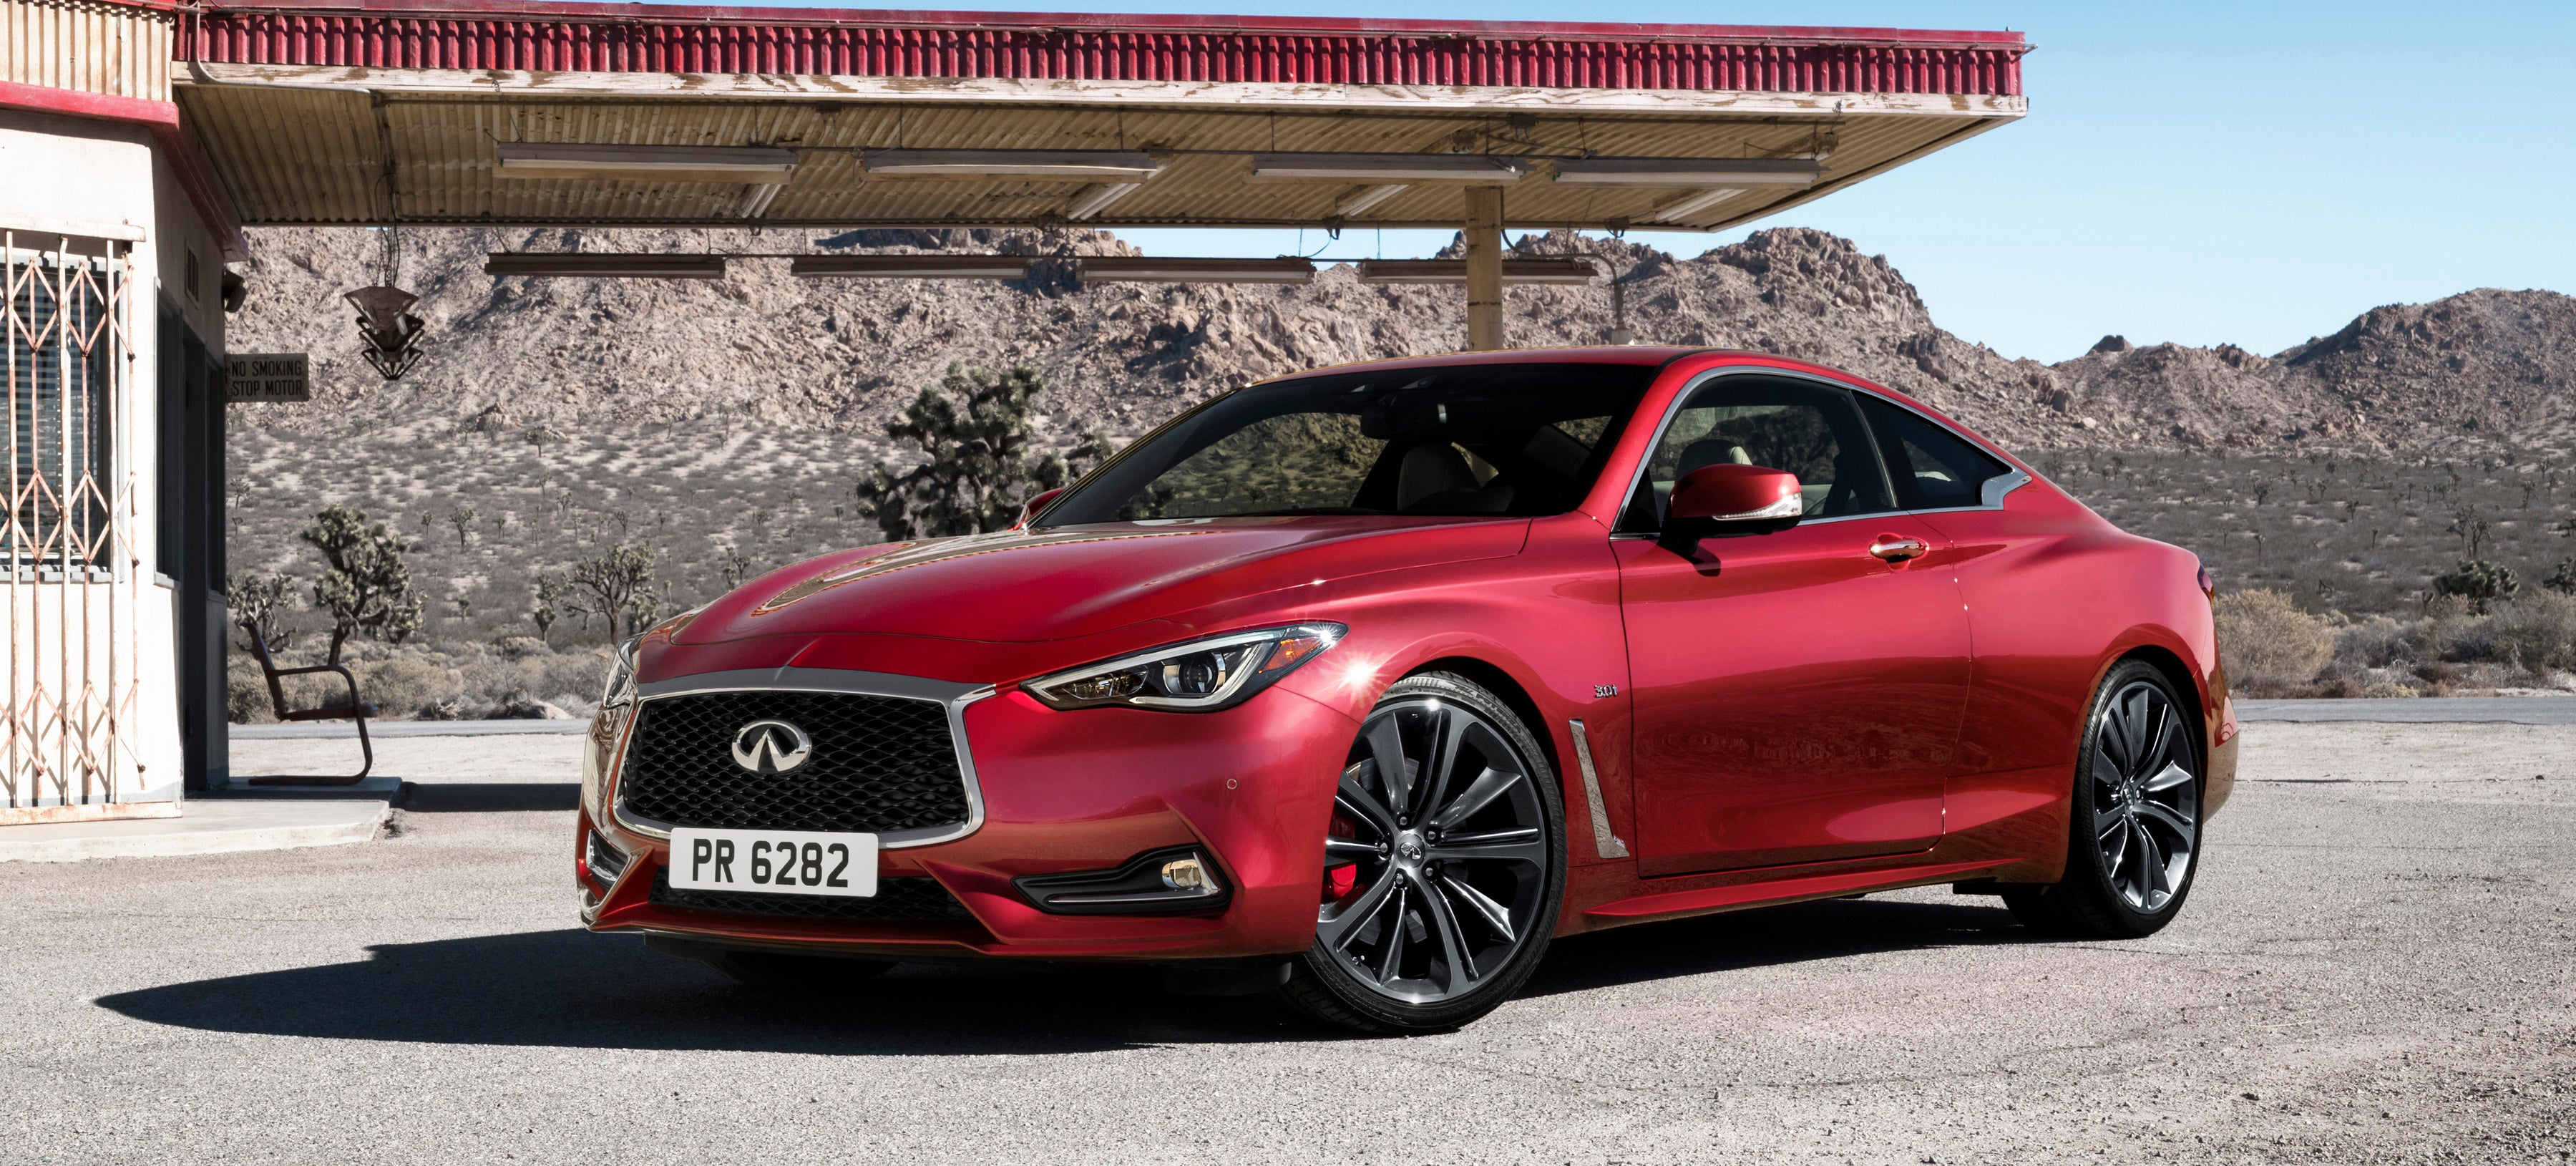 q60 infiniti wiring diagram wiring library International Wiring Diagrams q60 infiniti wiring diagram